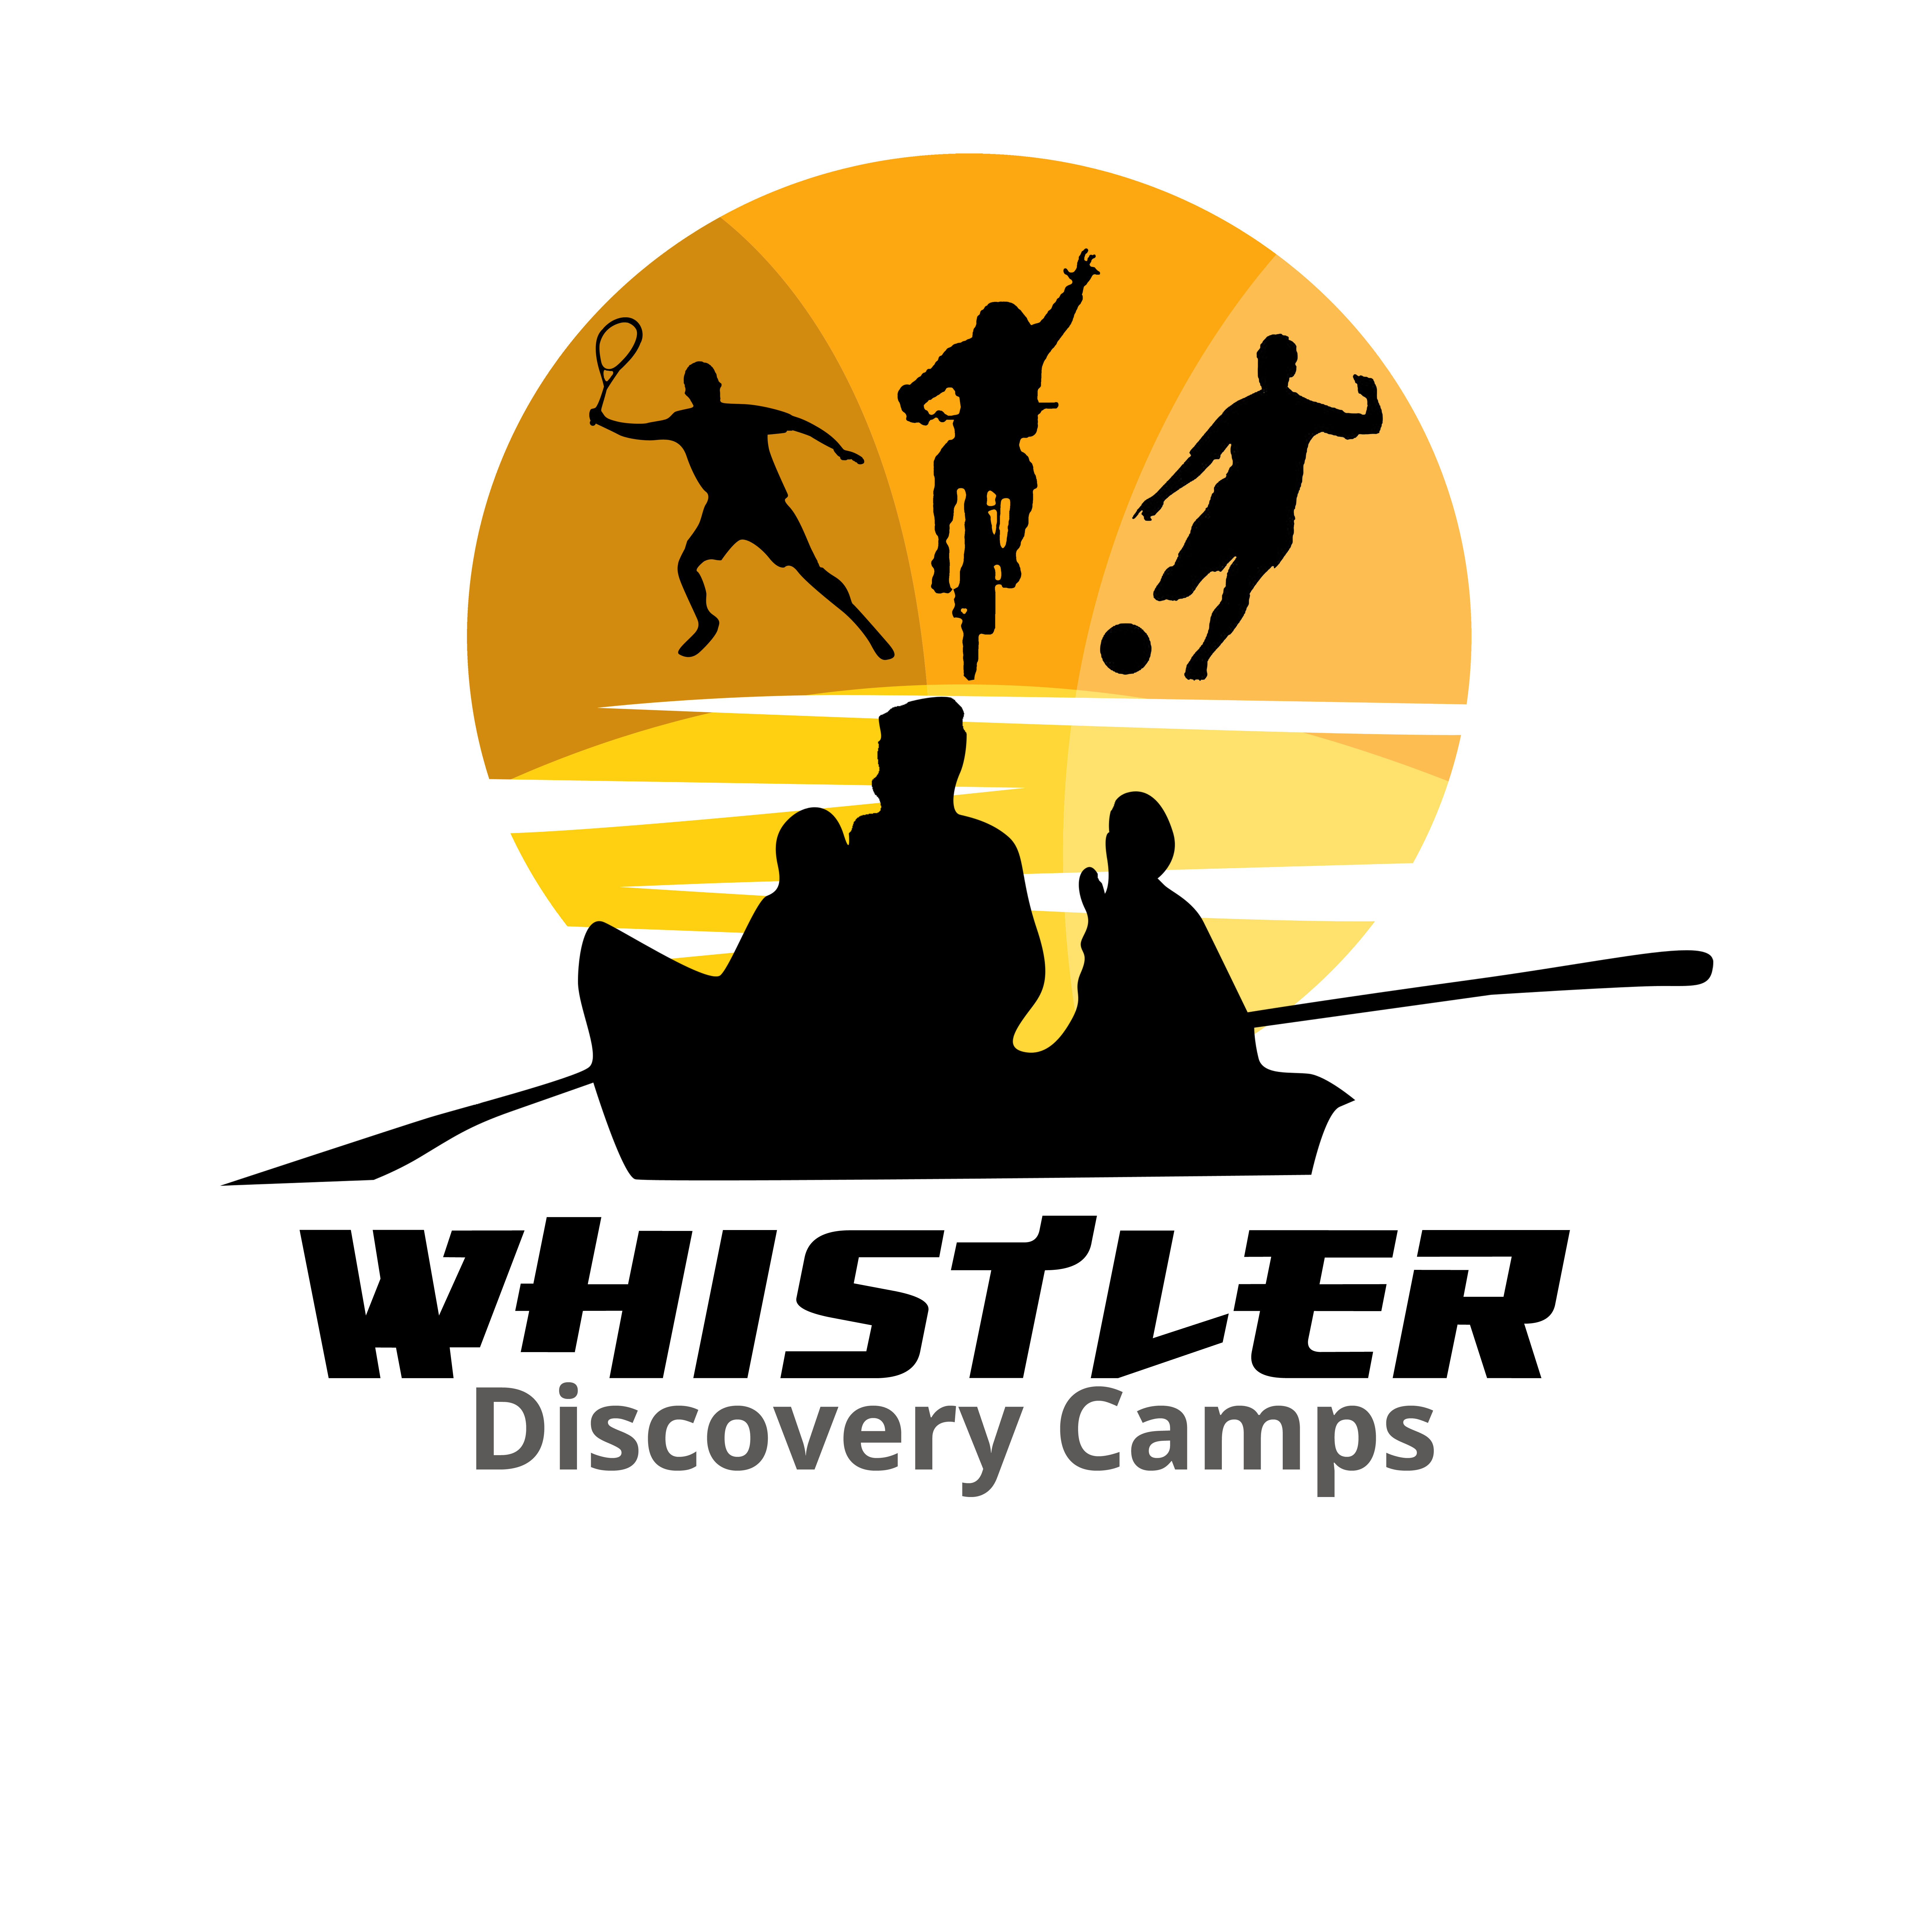 Logo Design by Allan Esclamado - Entry No. 86 in the Logo Design Contest Captivating Logo Design for Whistler Discovery Camps.